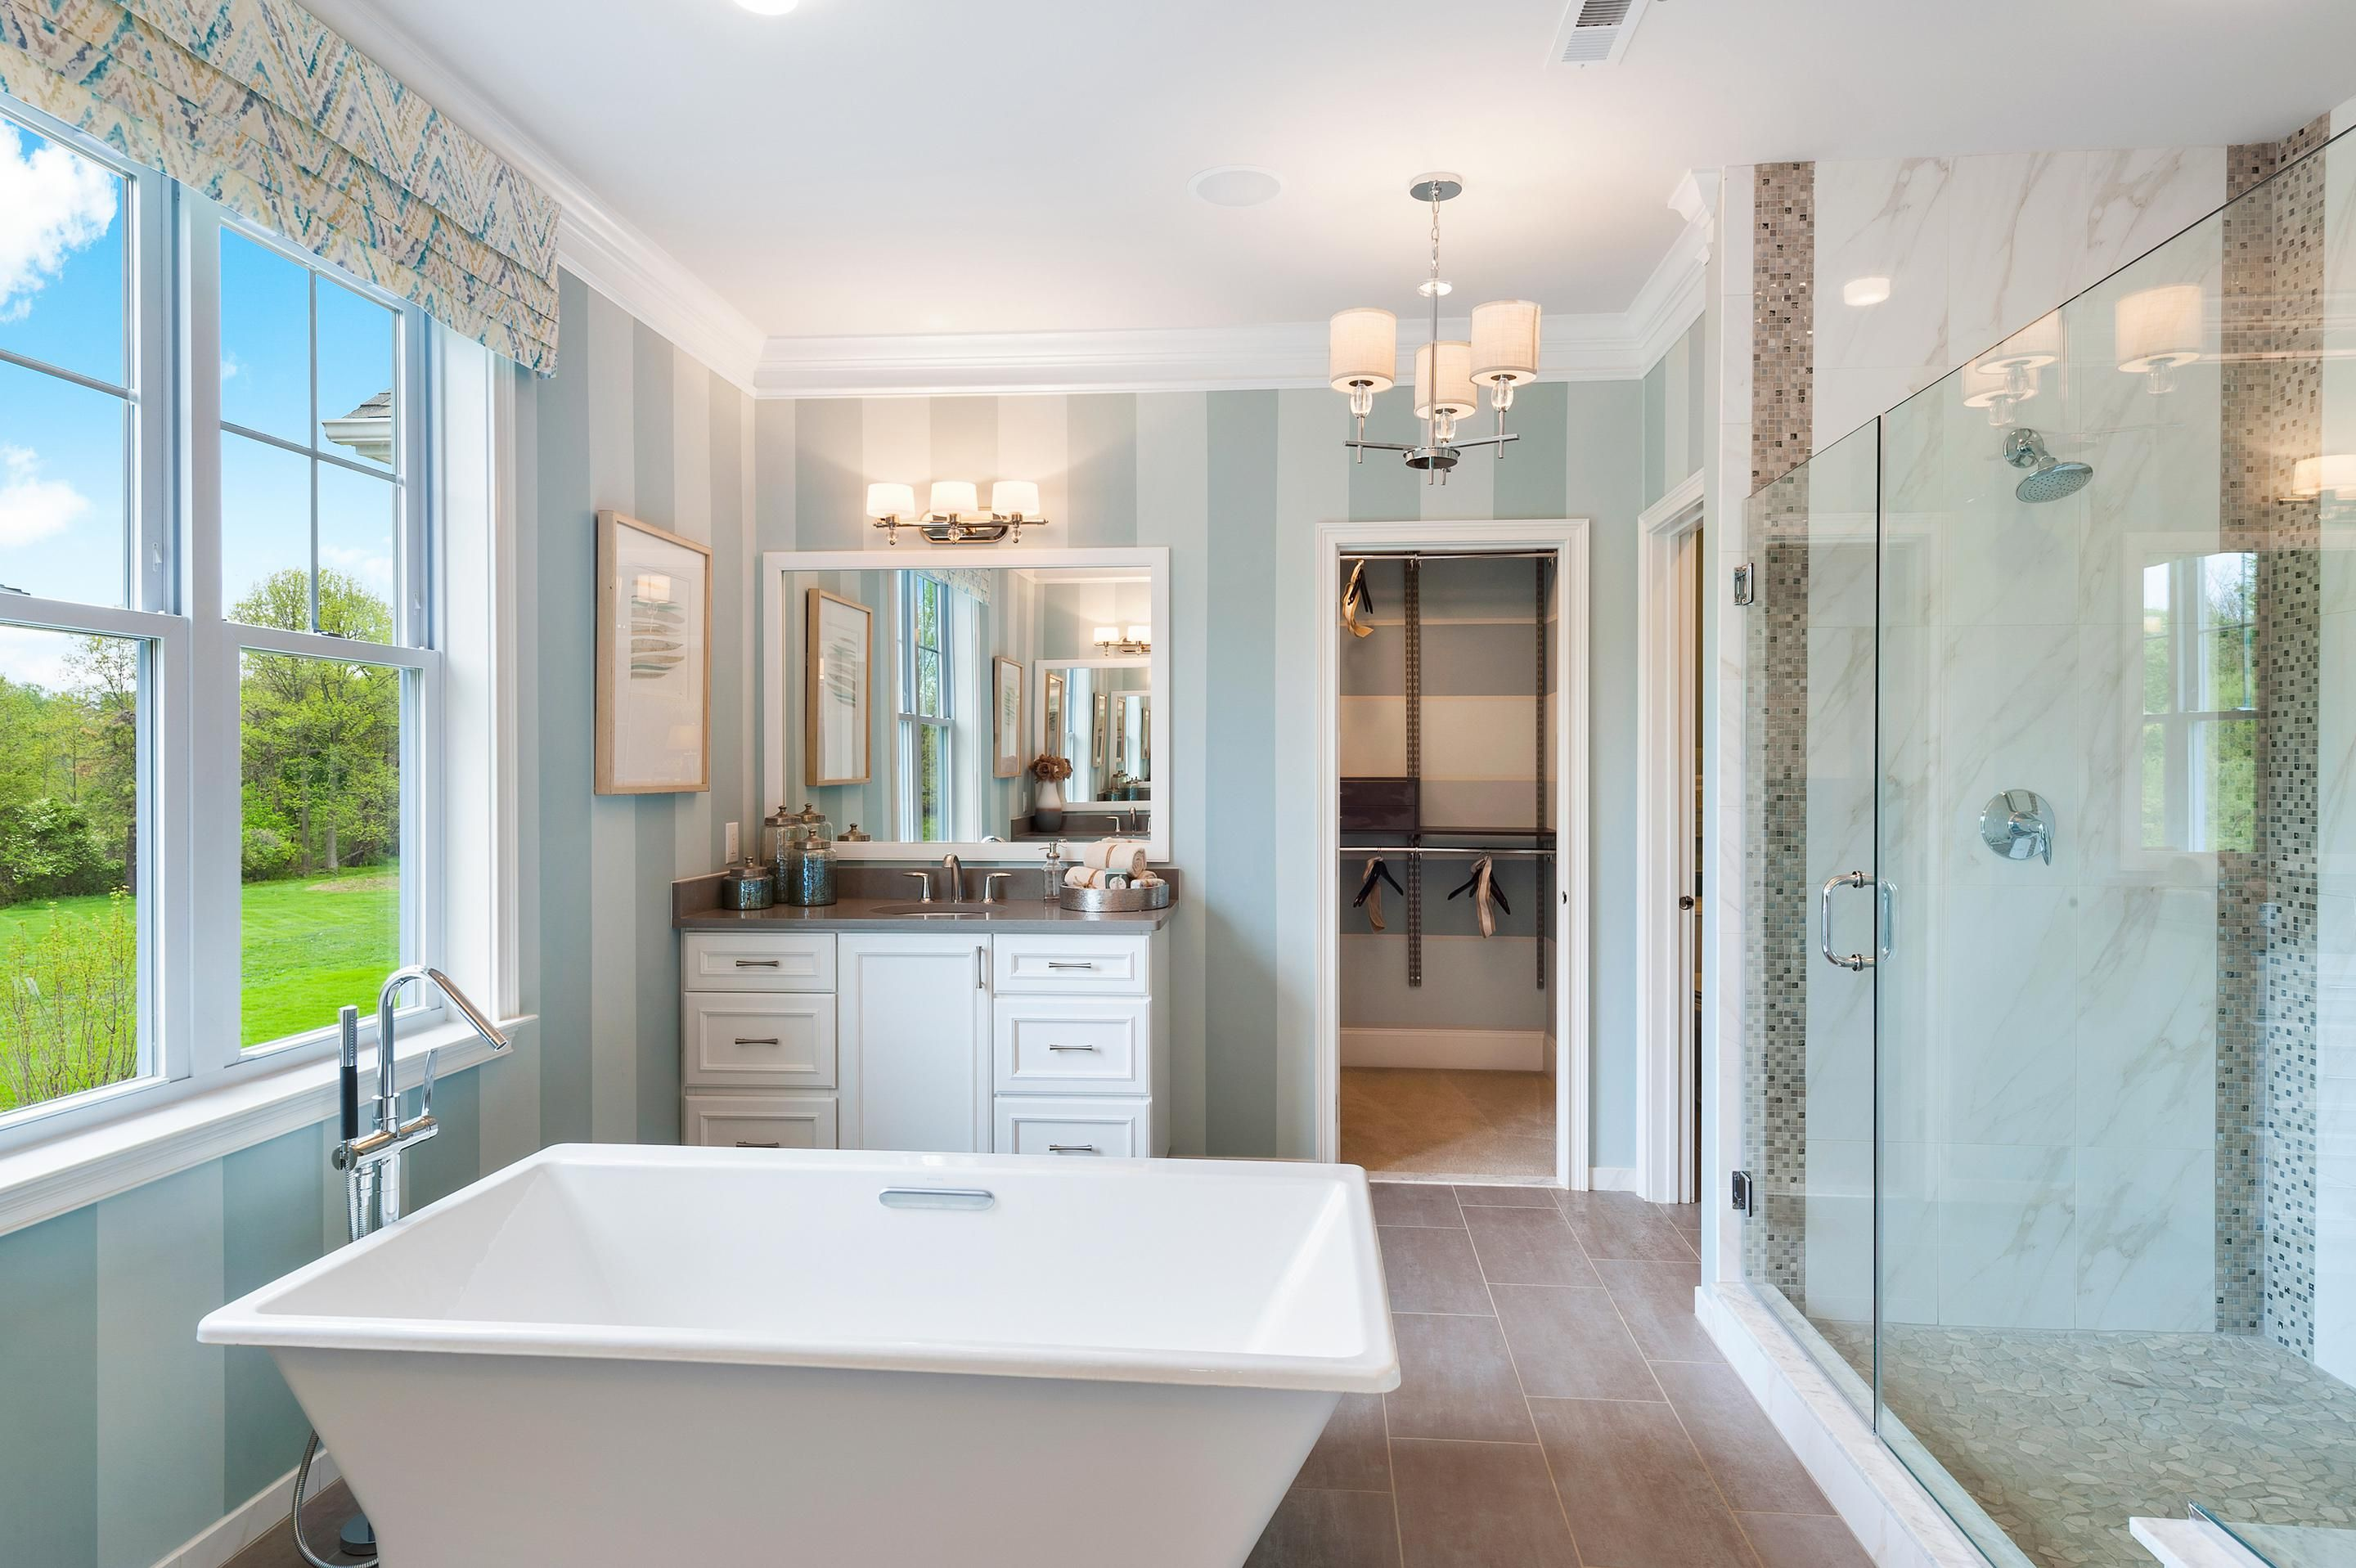 Astounding Estates At Bamm Hollow Homes The North Bathroom Download Free Architecture Designs Scobabritishbridgeorg